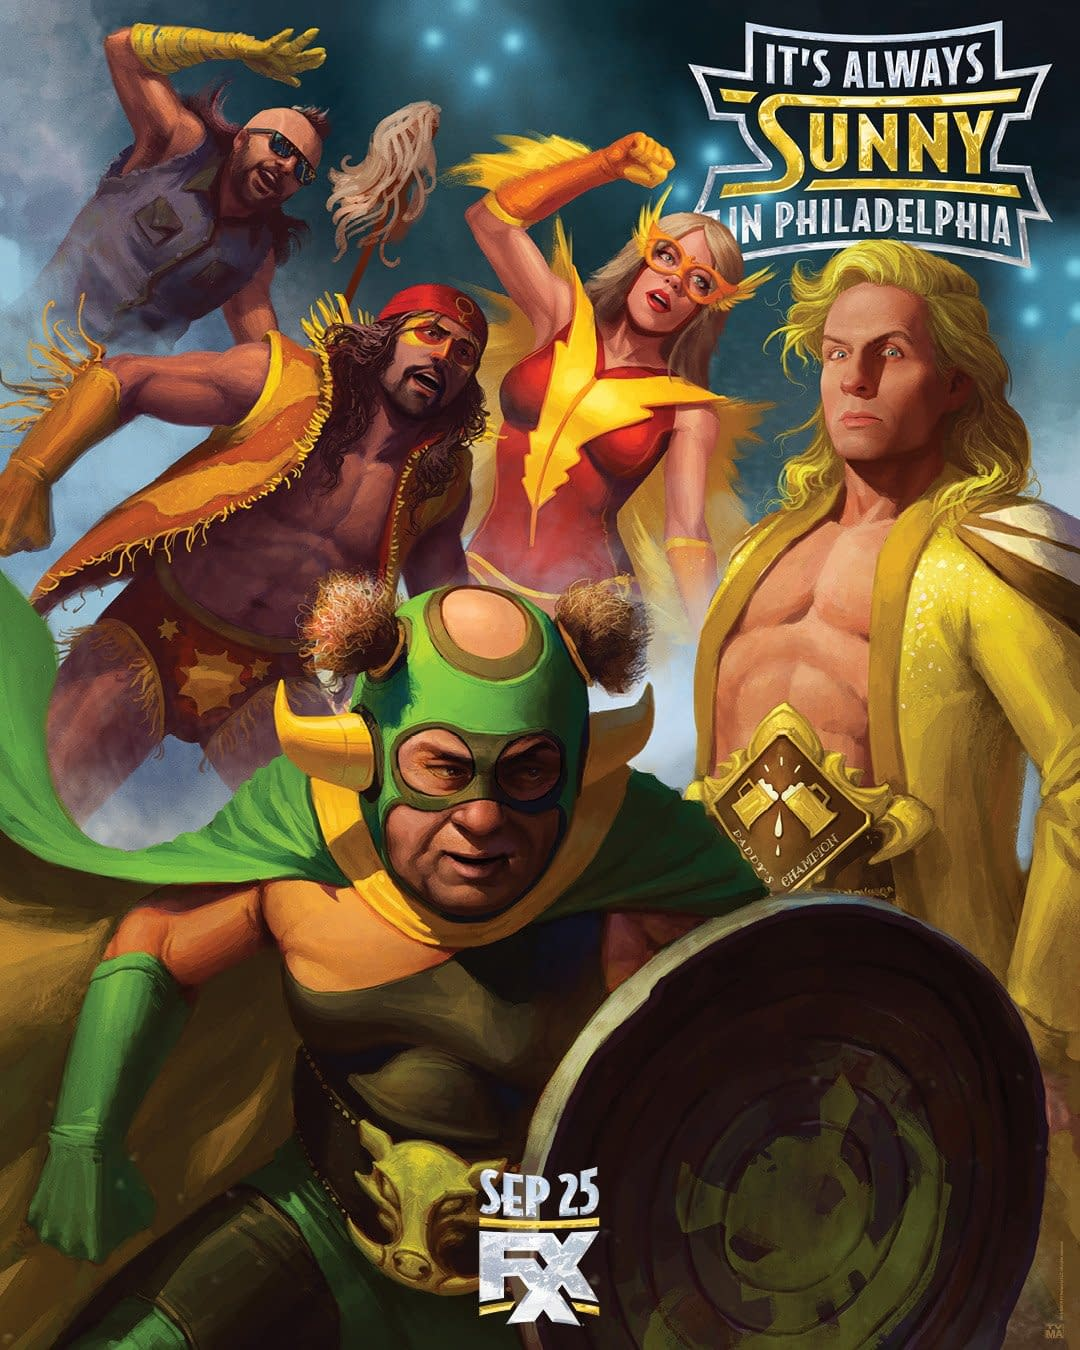 """It's Always Sunny in Philadelphia"" Season 14: Whatcha Gonna Do When Paddy's-mania Runs Wild On You! [NEW KEY ART]"